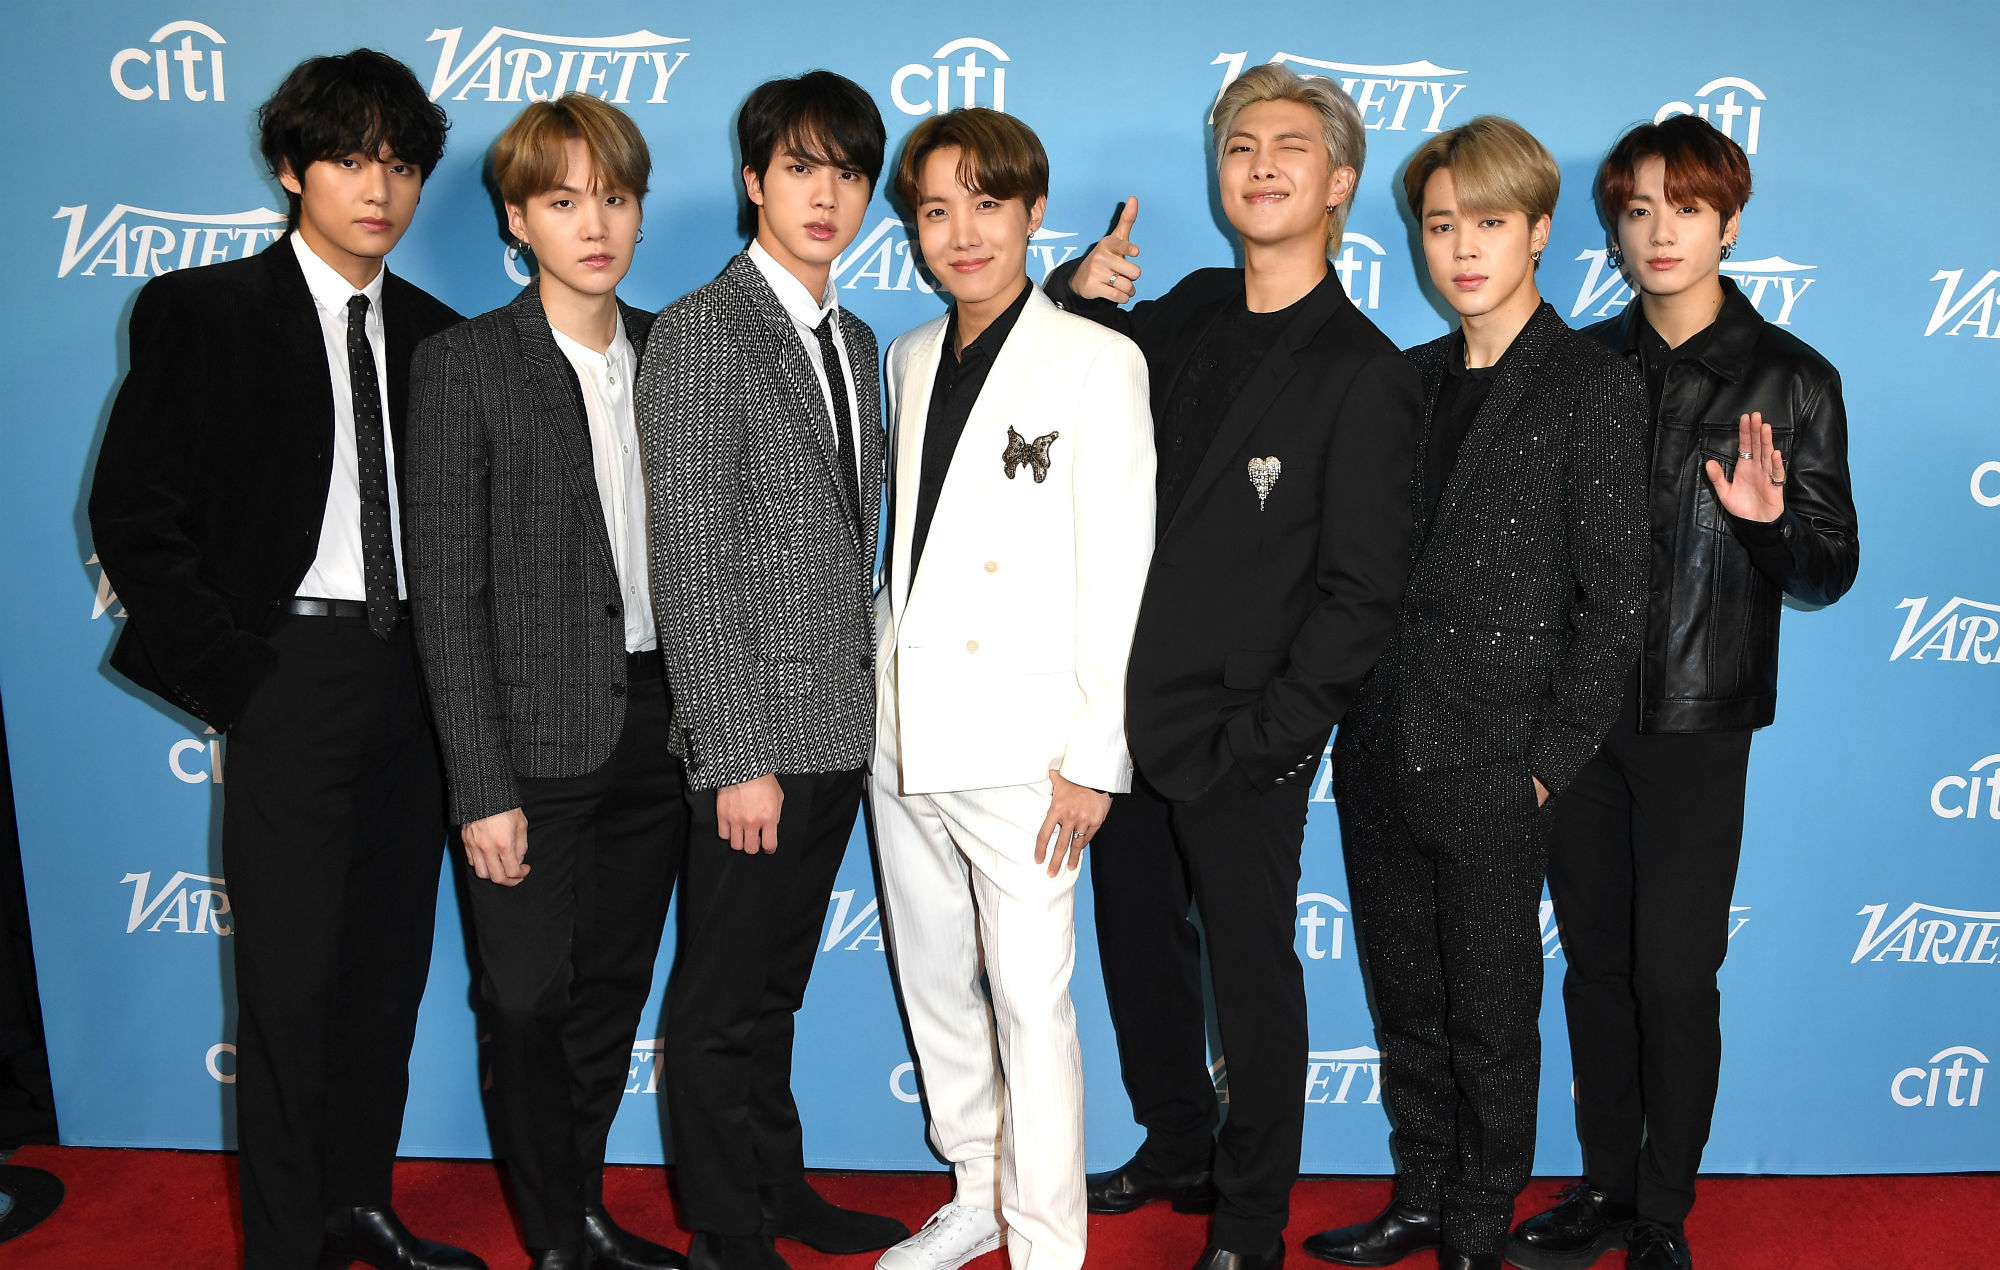 BTS at the red carpet